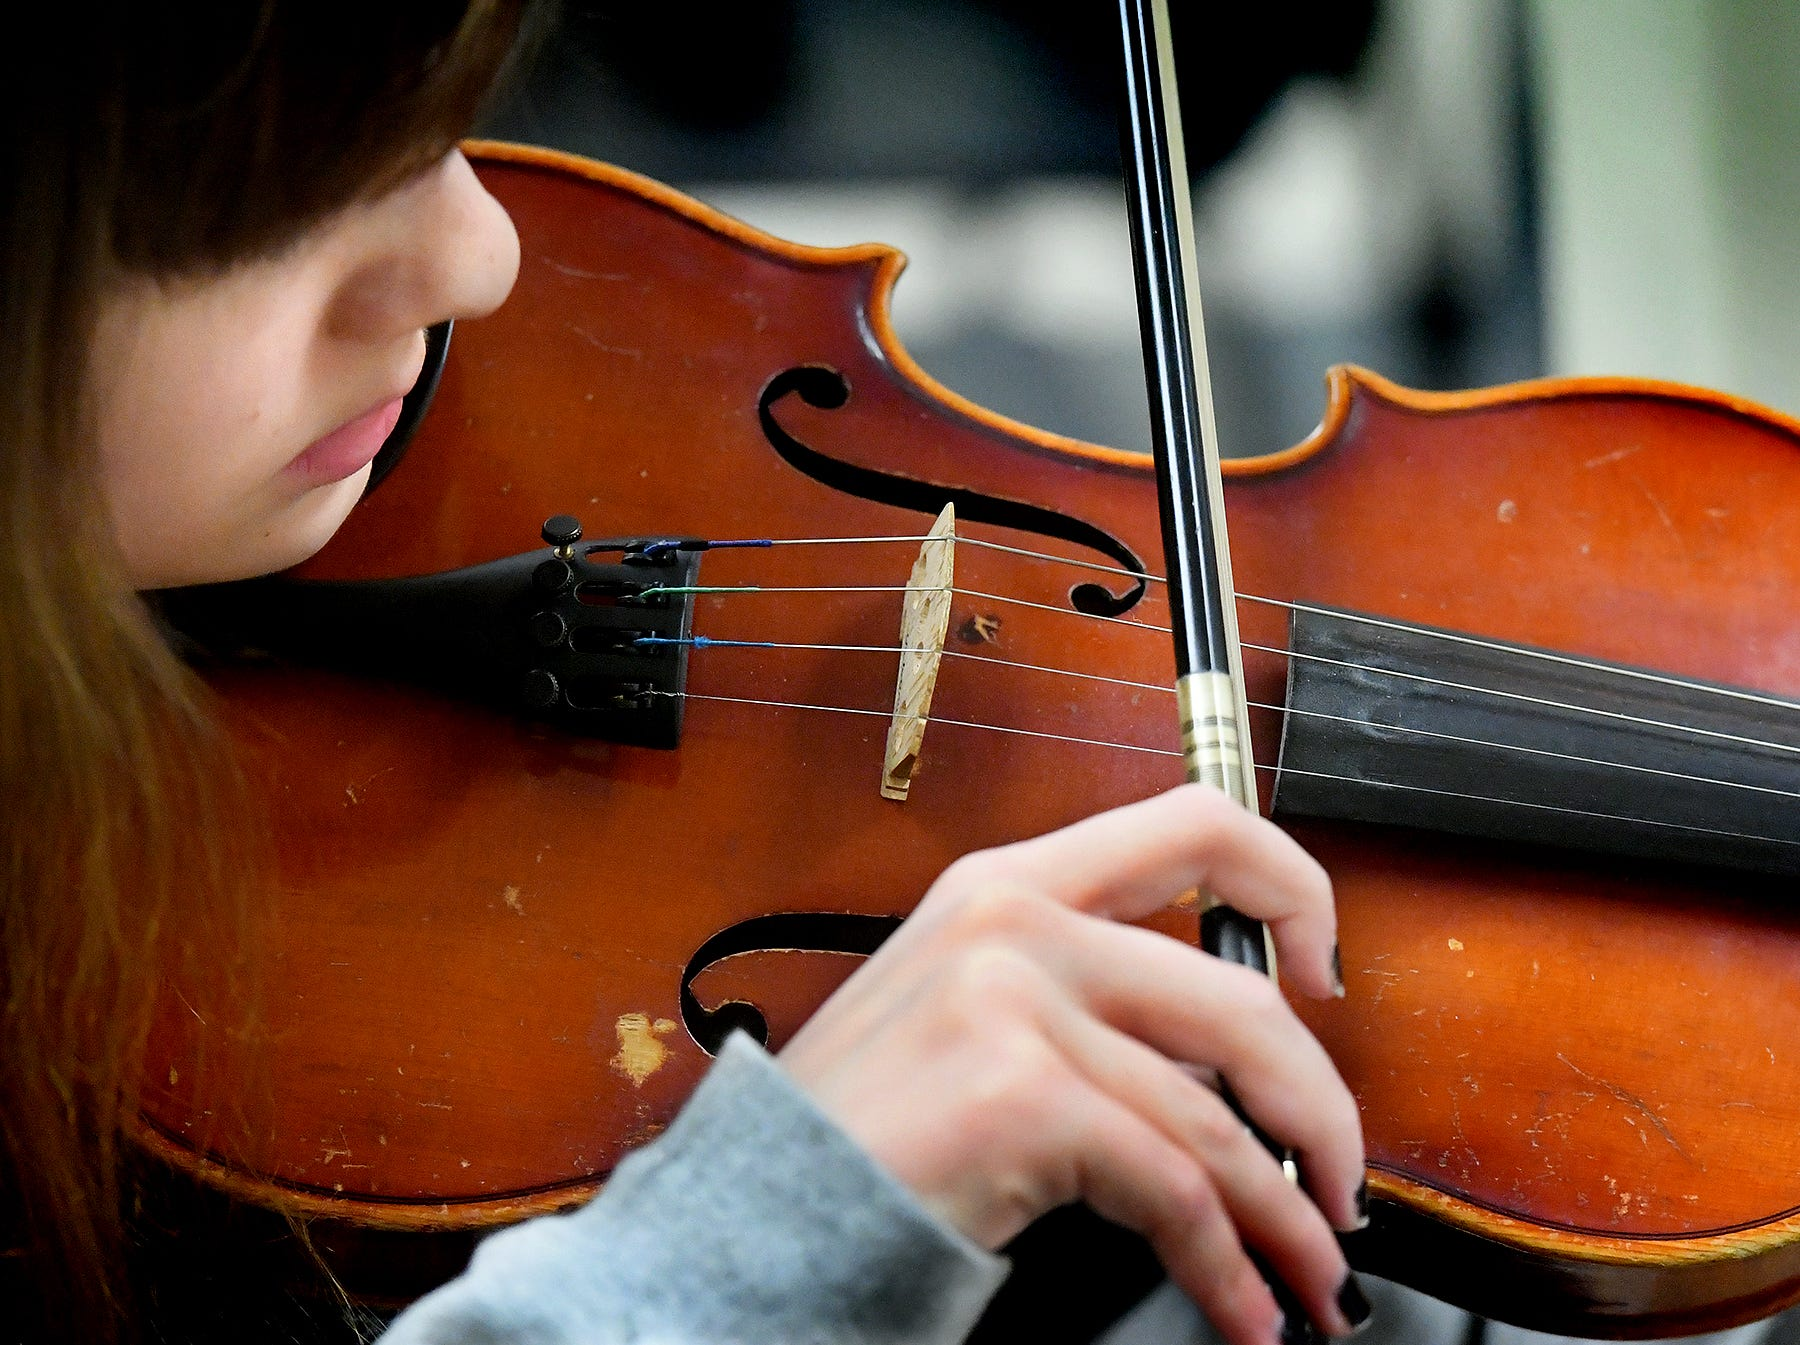 """Red Lion student Madison Lester plays violin during an orchestra rehearsal at the school Friday, March 1, 2019. The orchestra is fine-tuning """"Obsidian Rainbow"""" which was written by Red Lion graduate and New York composer Derek Cooper. He is premiering the piece via the Red Lion Area High School string orchestra on Wednesday, March 6. Cooper will be at the school working with the orchestra beforehand. Bill Kalina photo"""